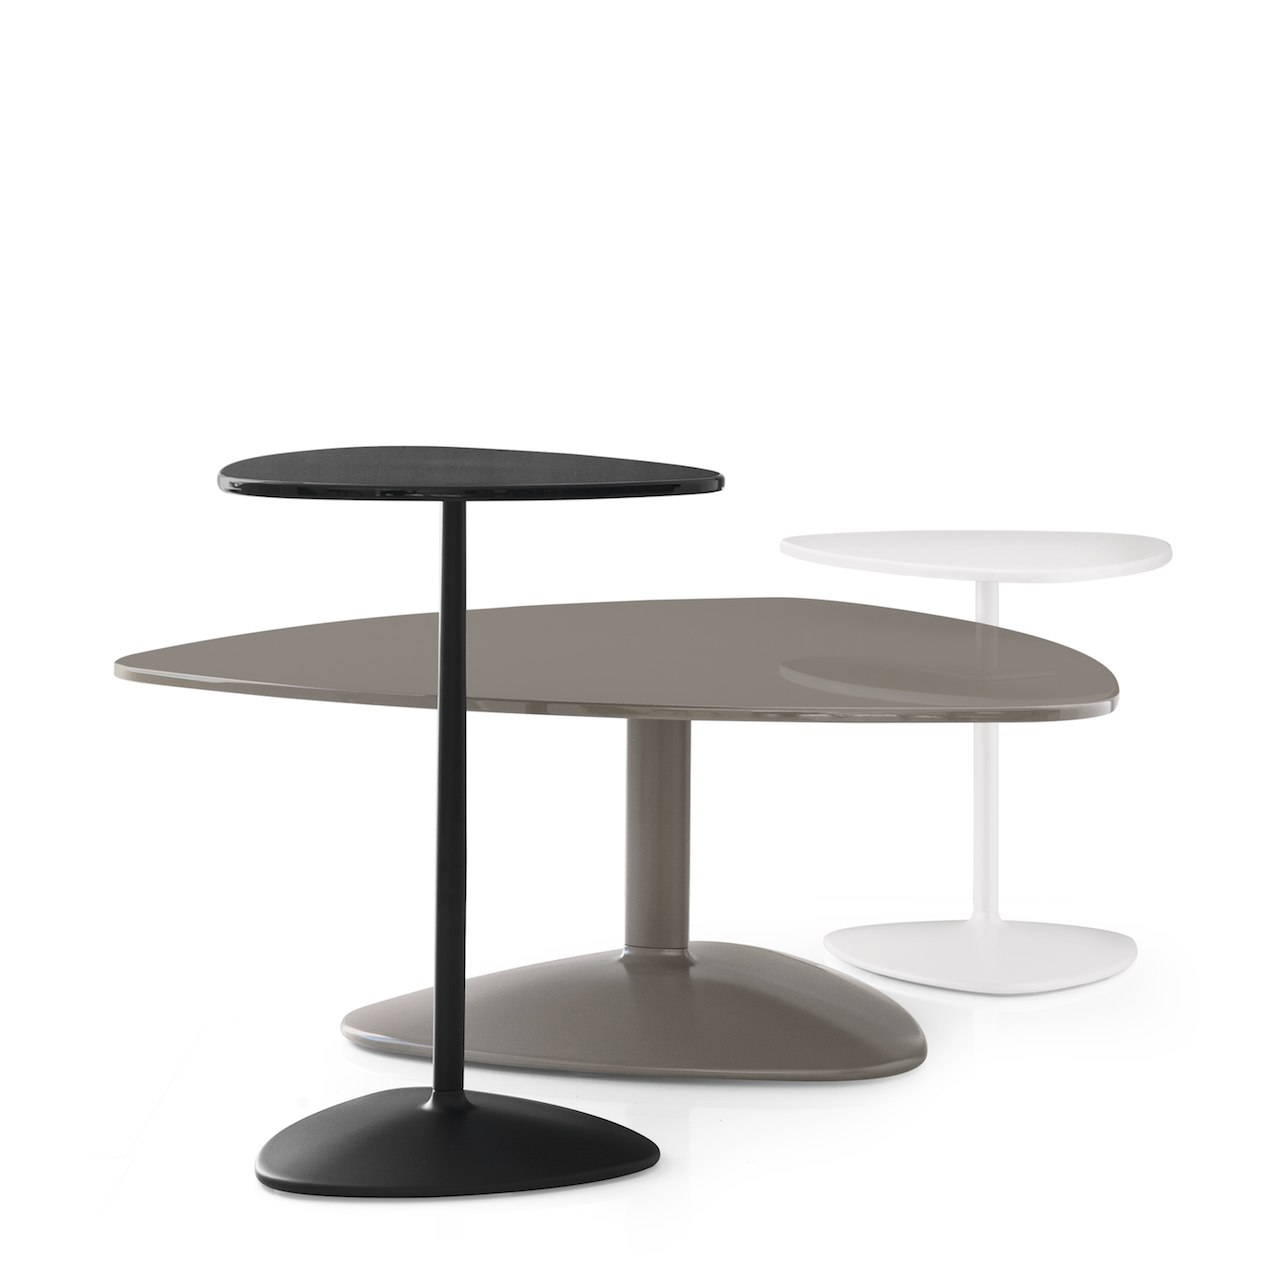 Tavolo islands cb 5061 b connubia by calligaris linea for Catalogo calligaris